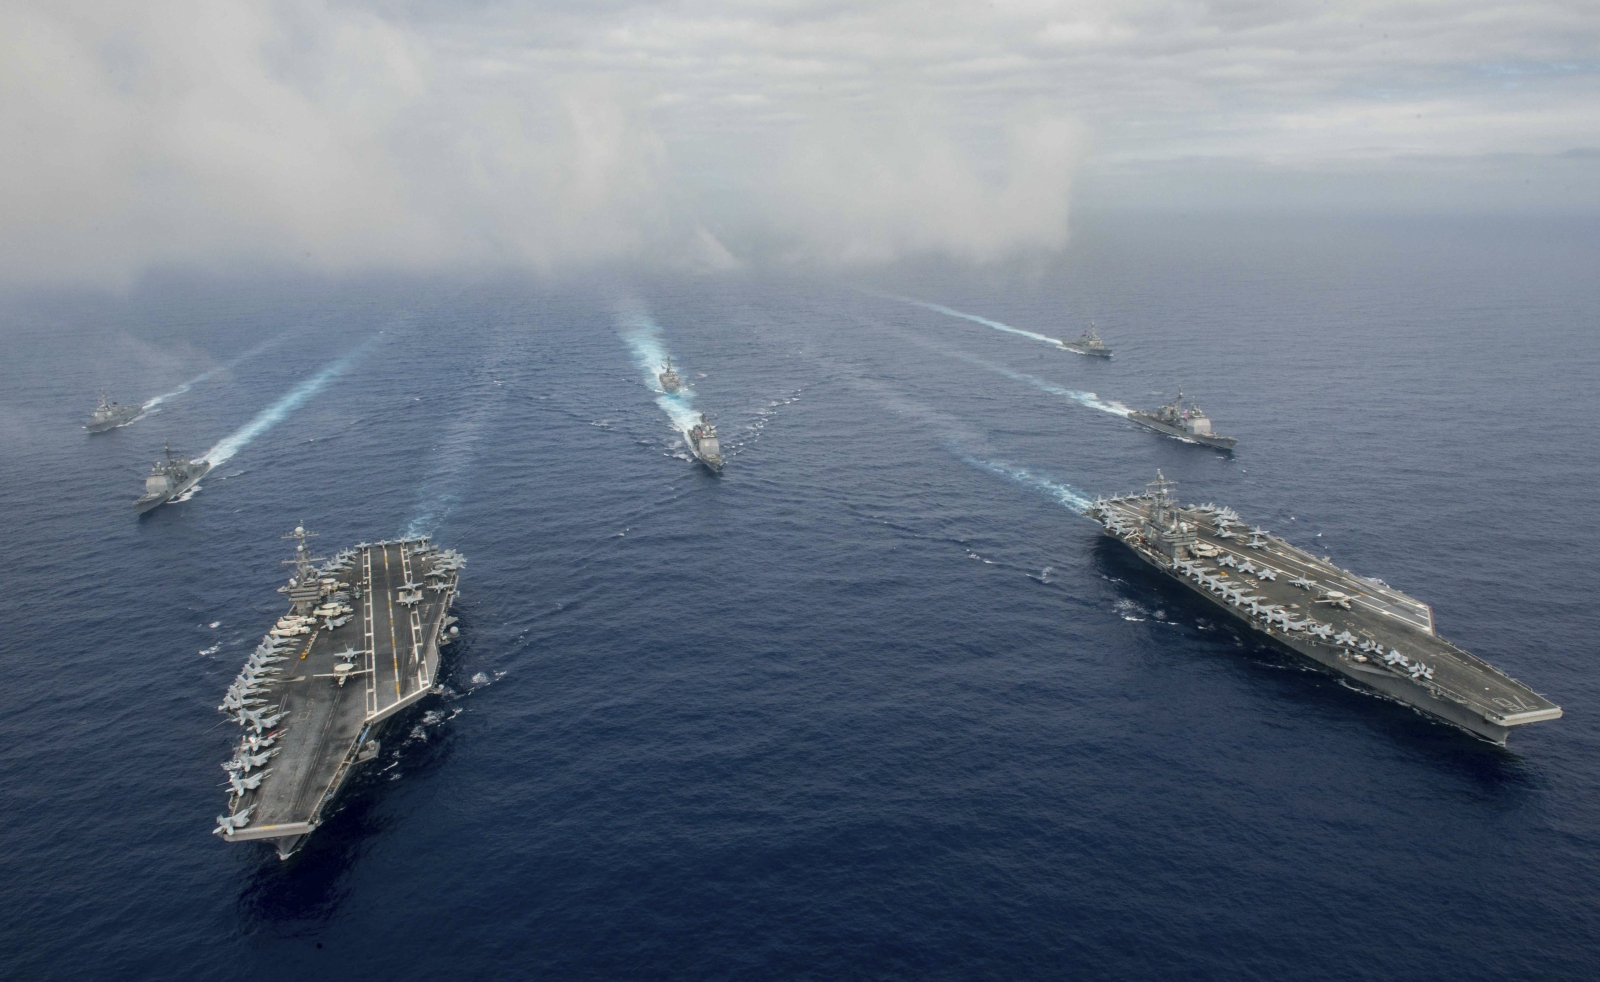 United States deploys nuclear aircraft carrier USS Ronald Reagan to joint naval drill